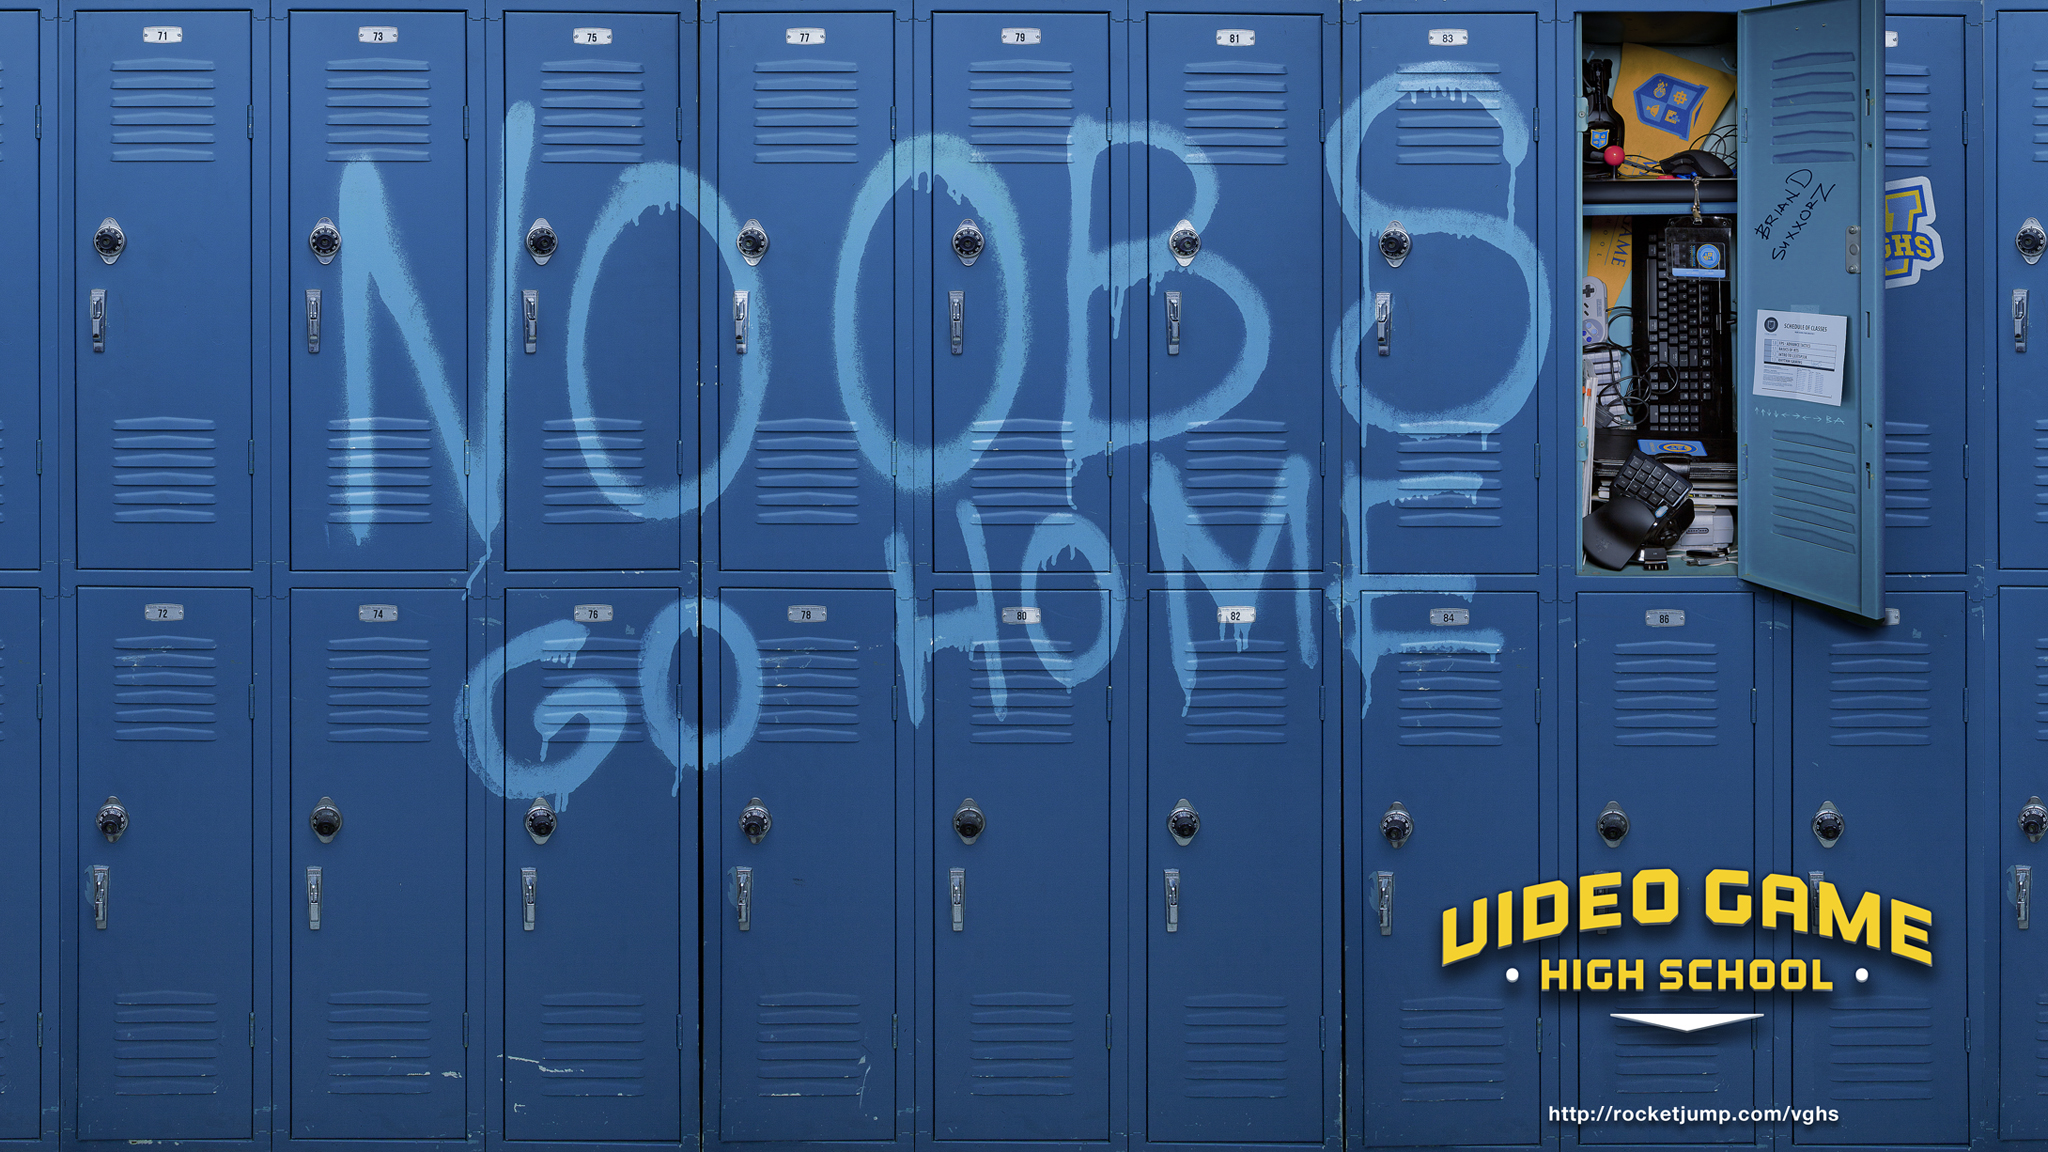 VGHS Video Game High School wallpaper 1